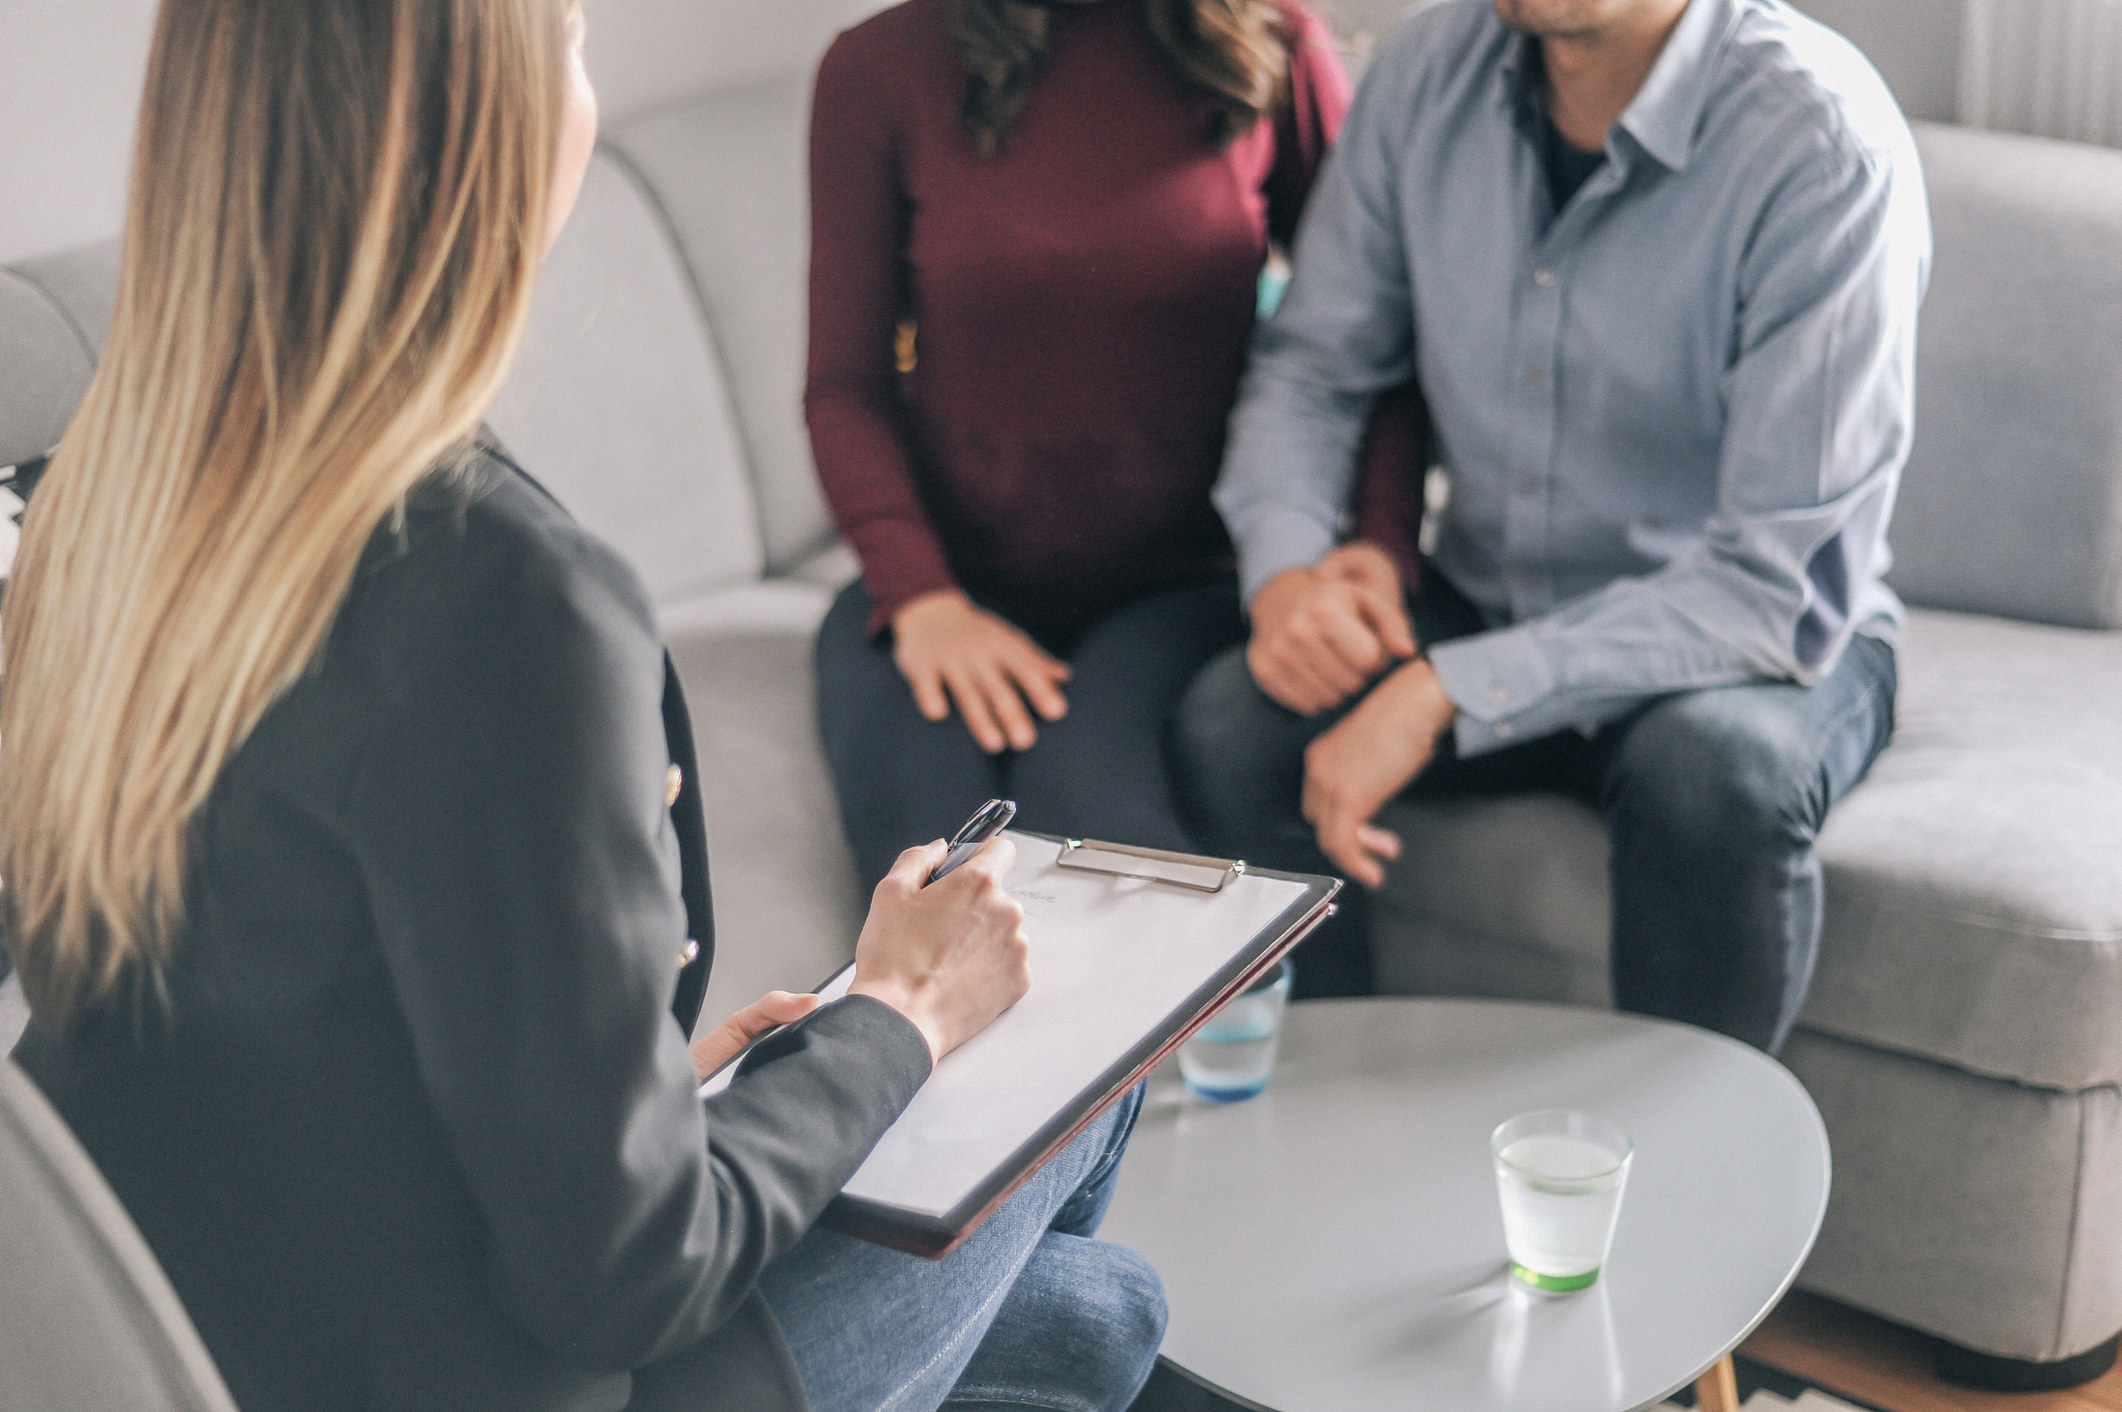 A therapist talks to a couple during a session